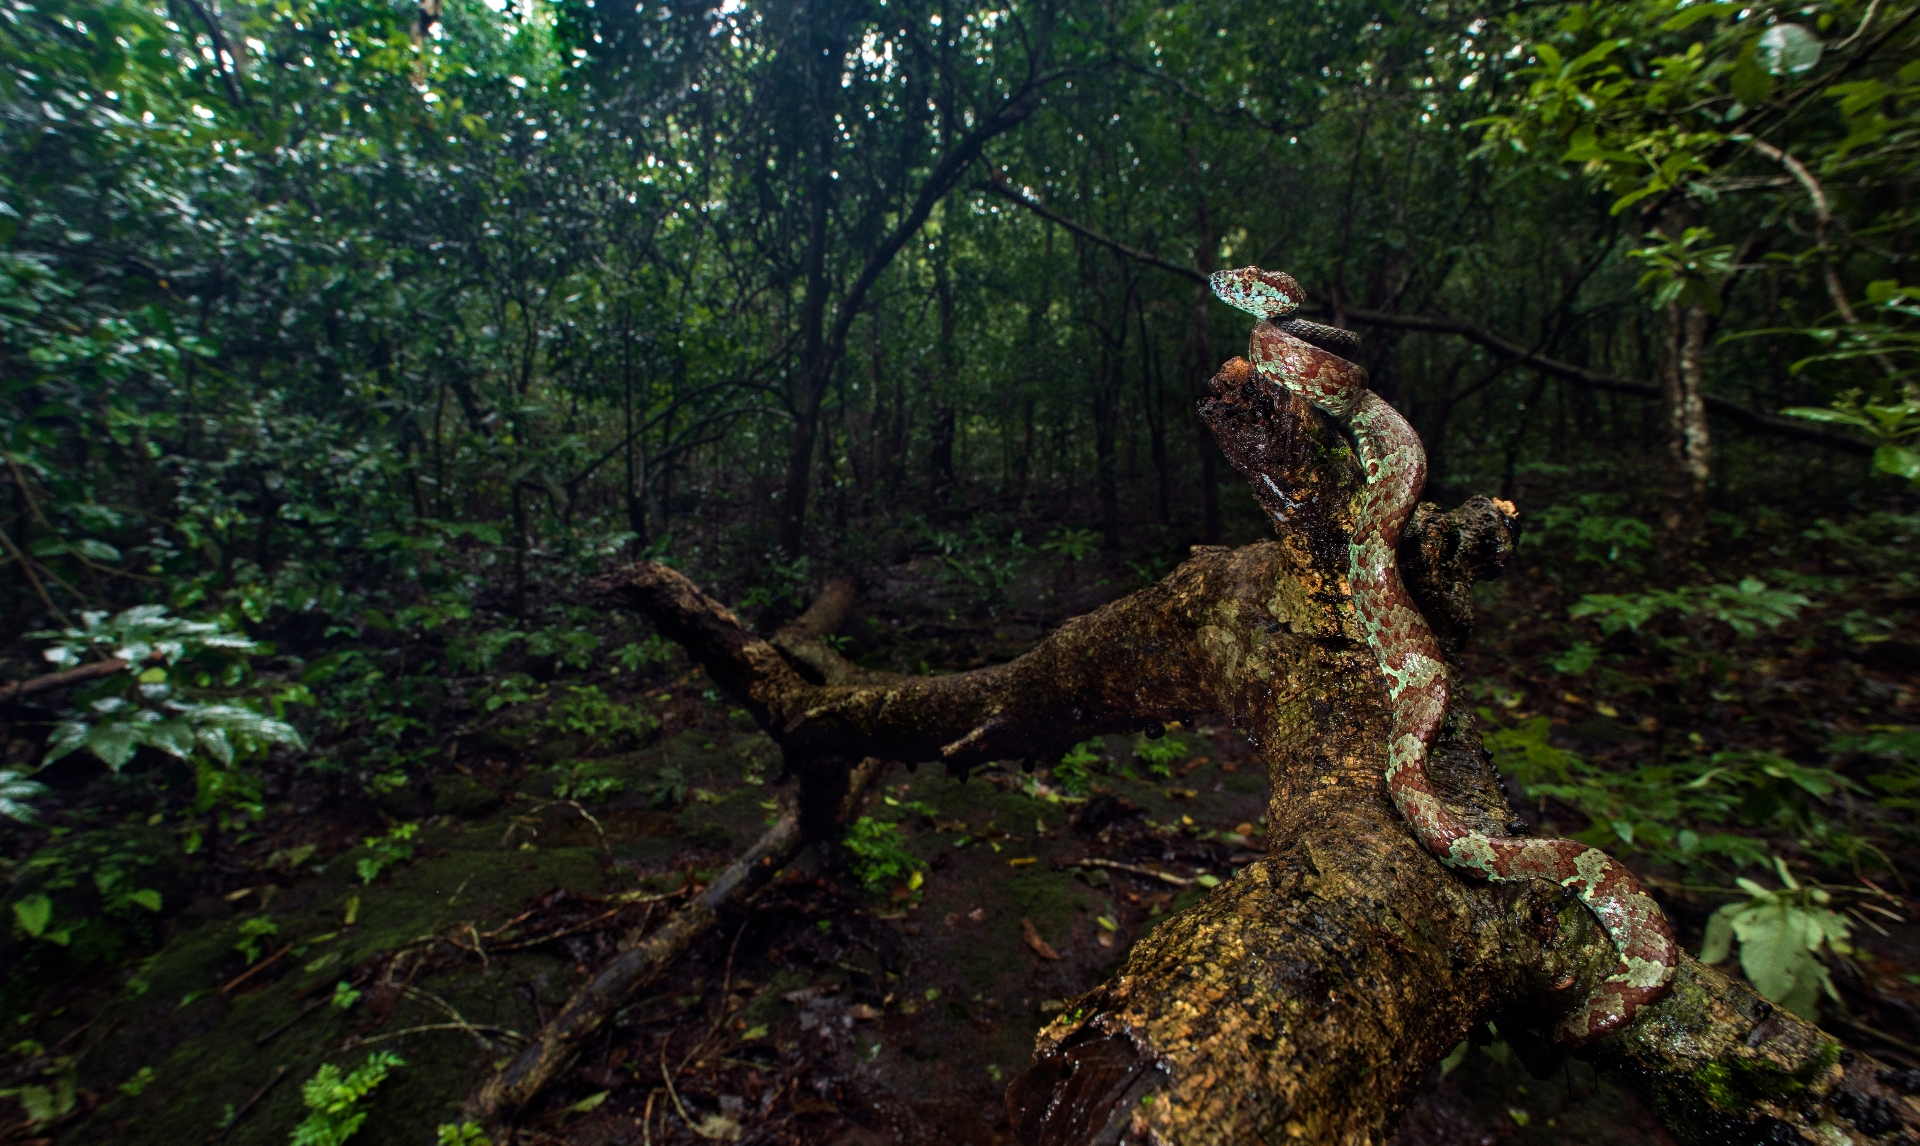 Vipers are largely divided into two categories: Old World vipers and pit vipers. This is a fine specimen of a Malabar pit viper, lazing on a decomposing tree trunk in the thick, lush forests of the Western Ghats, in Yana, Karnataka. Photo: Uday Hegde </br> Cover: A female Malabar pit viper, photographed in Wayanad, Kerala. Photo: Nirmal Kulkarni